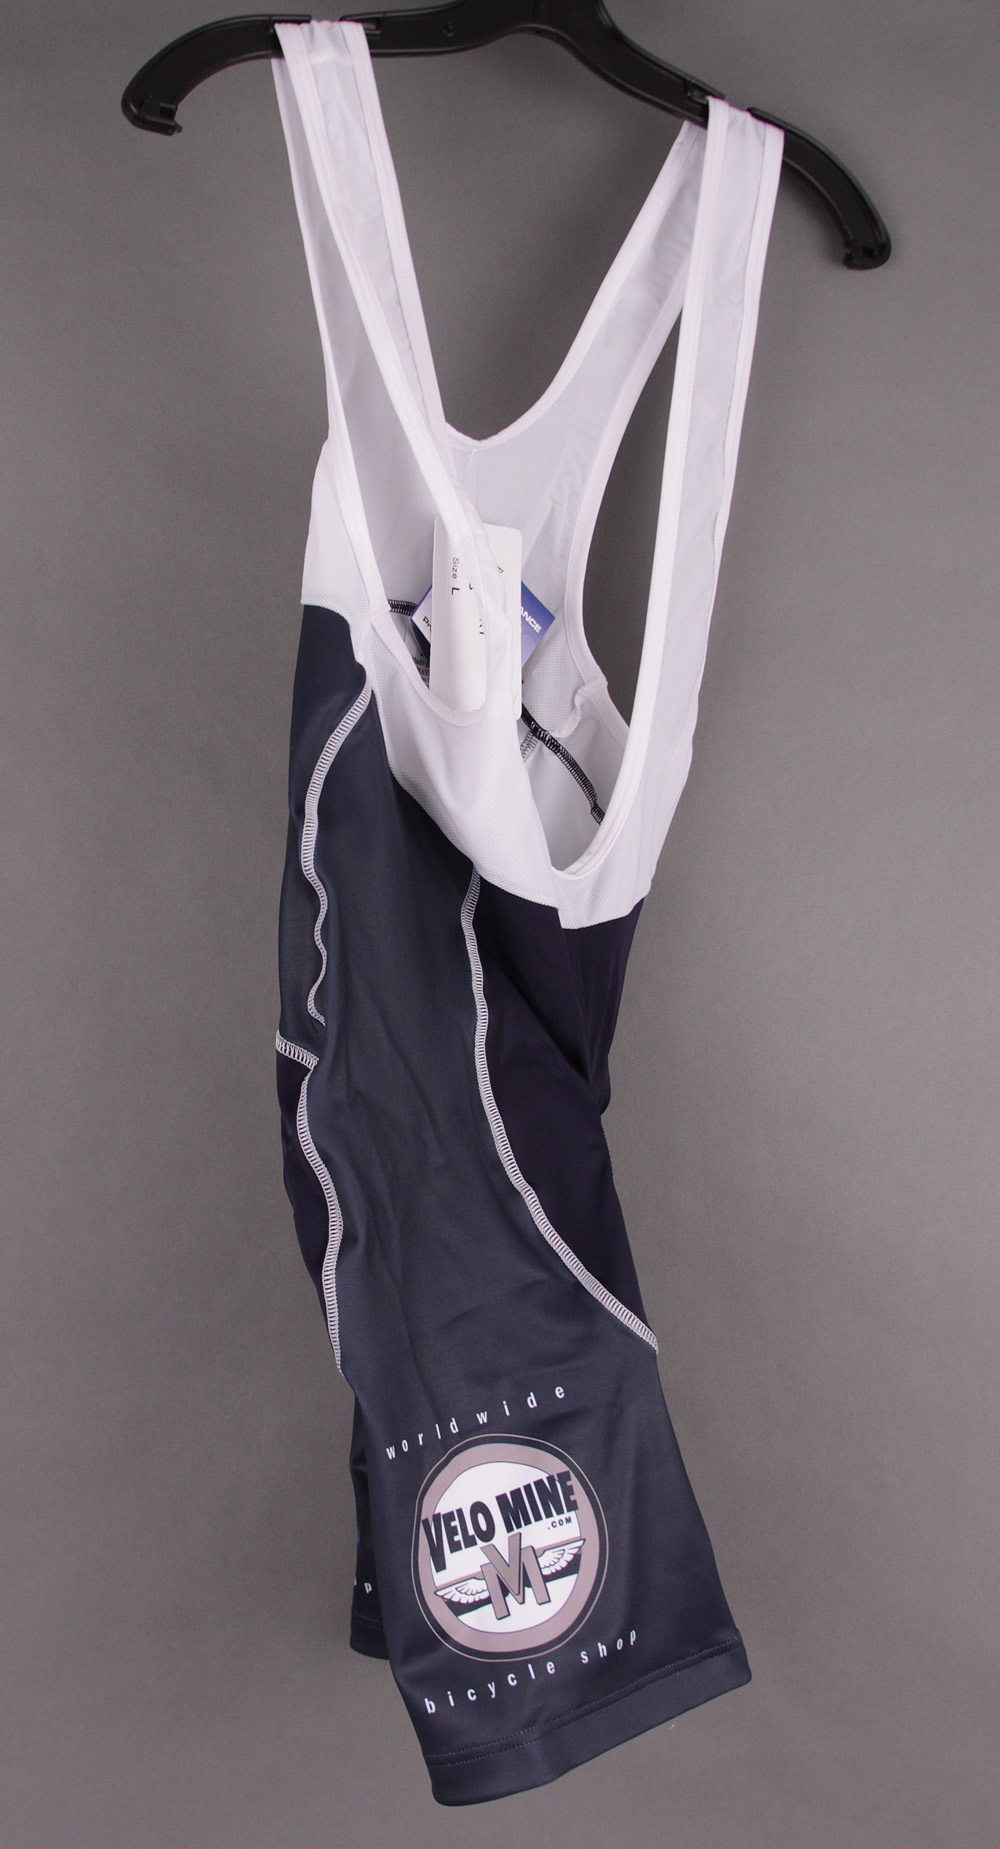 Velo Mine Bib Shorts European Race Cut